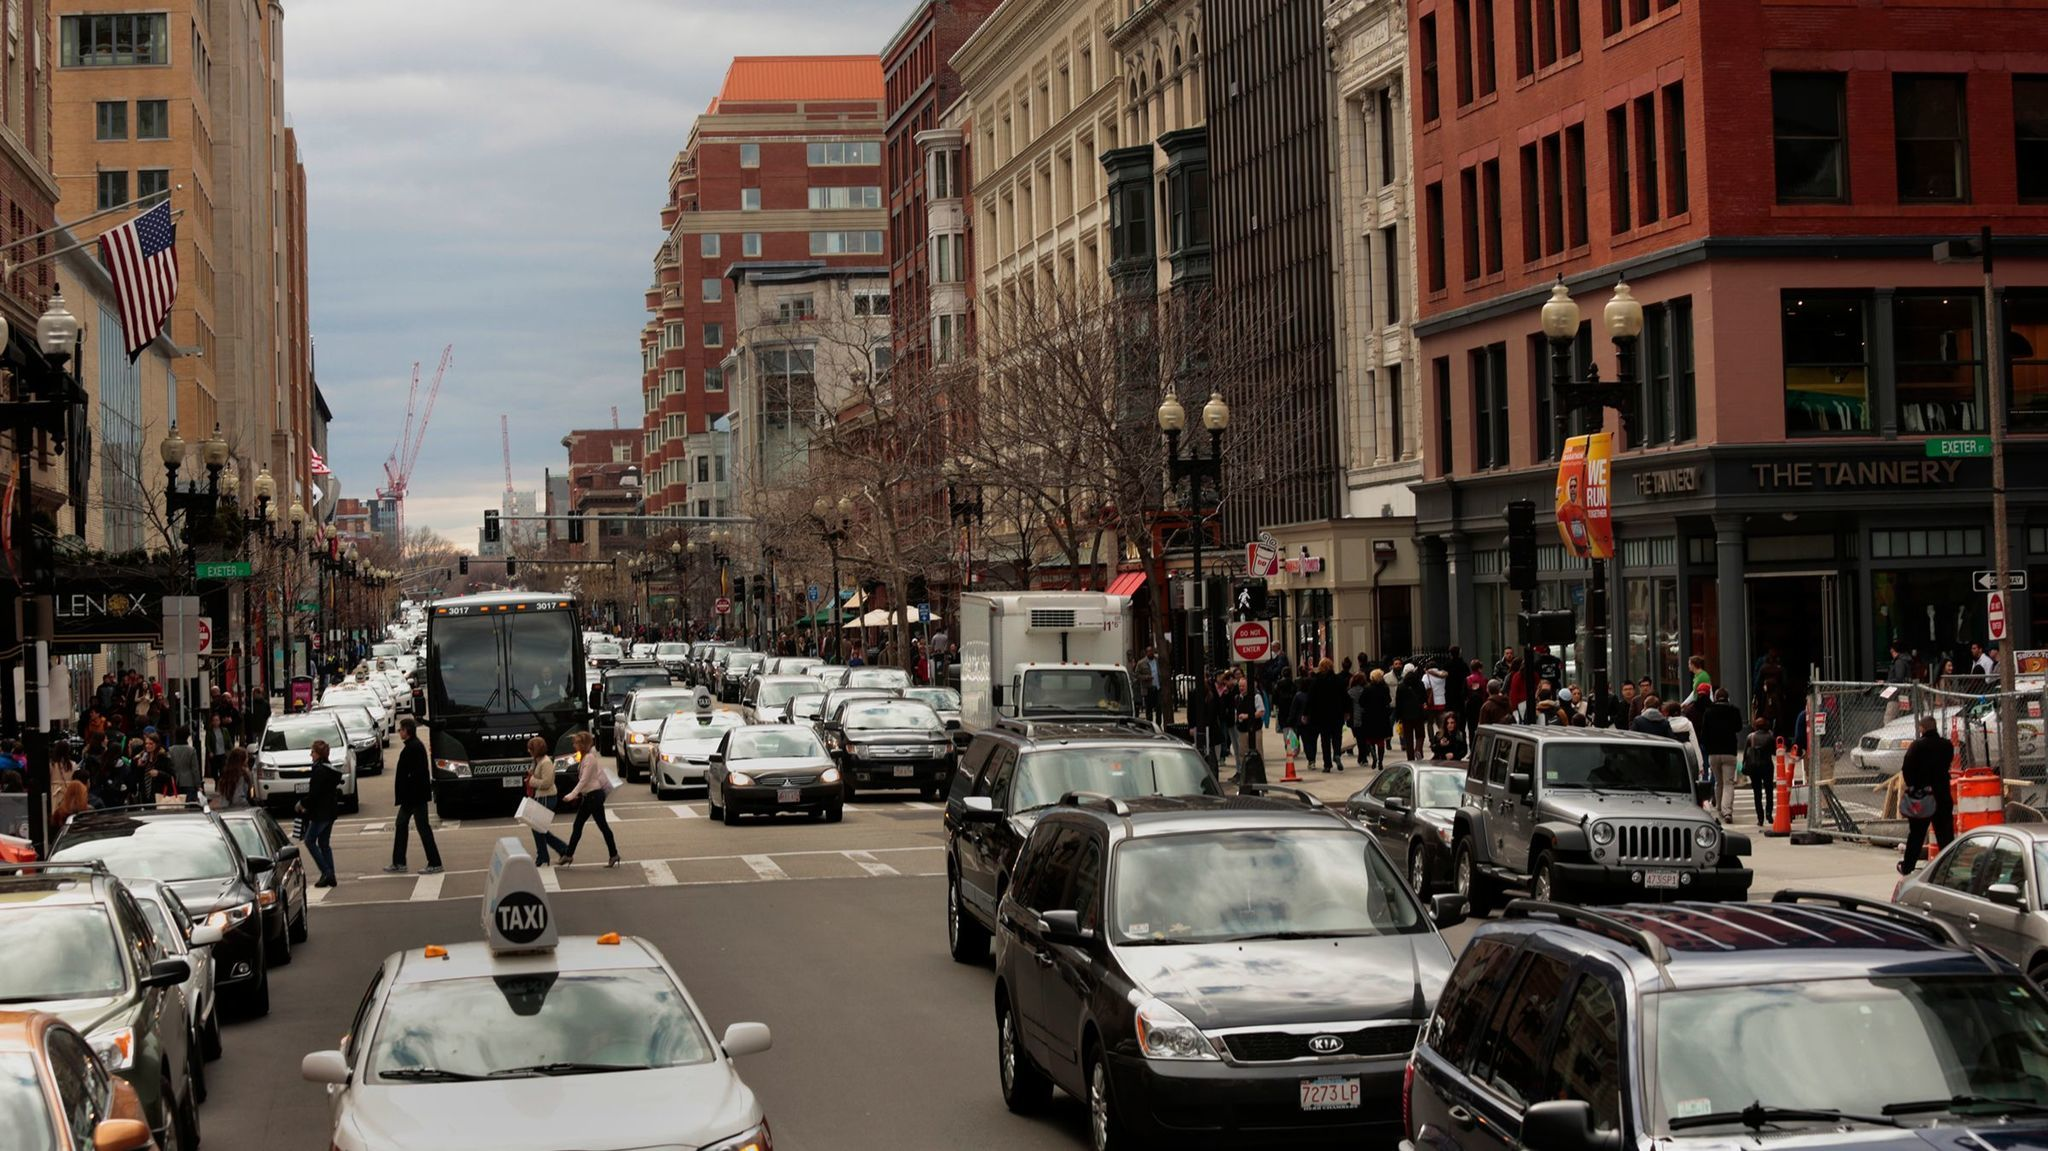 Boston is a fine city. But you wouldn't necessarily want to drive there.